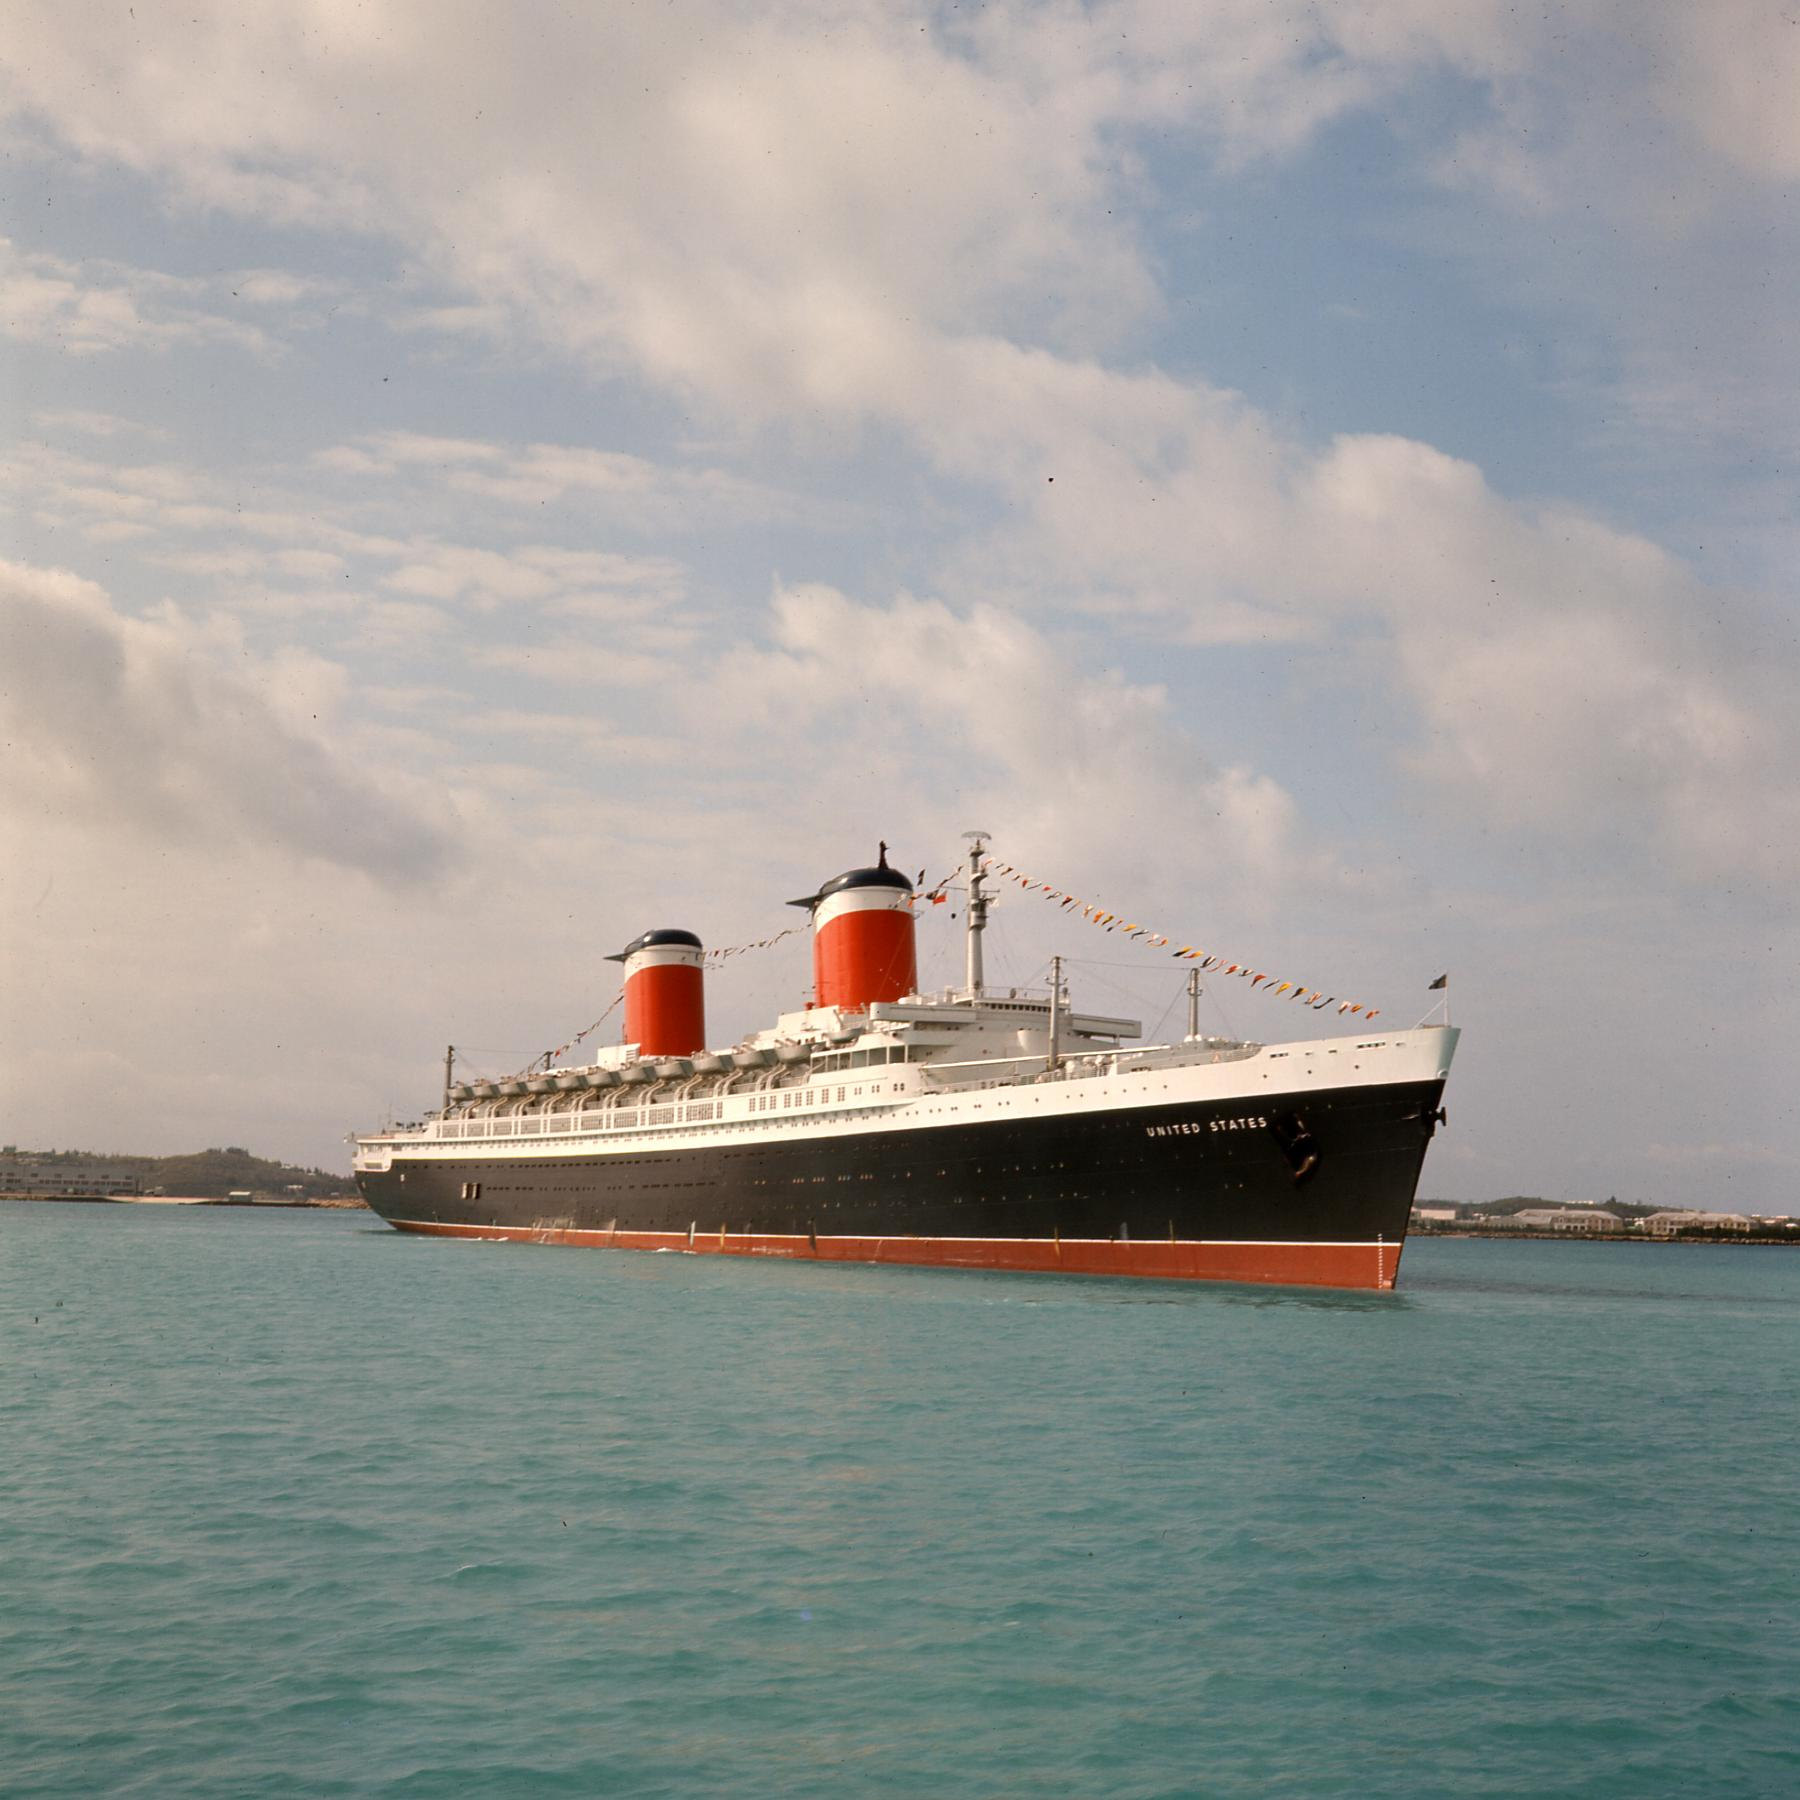 SS United States Redevelopment Project